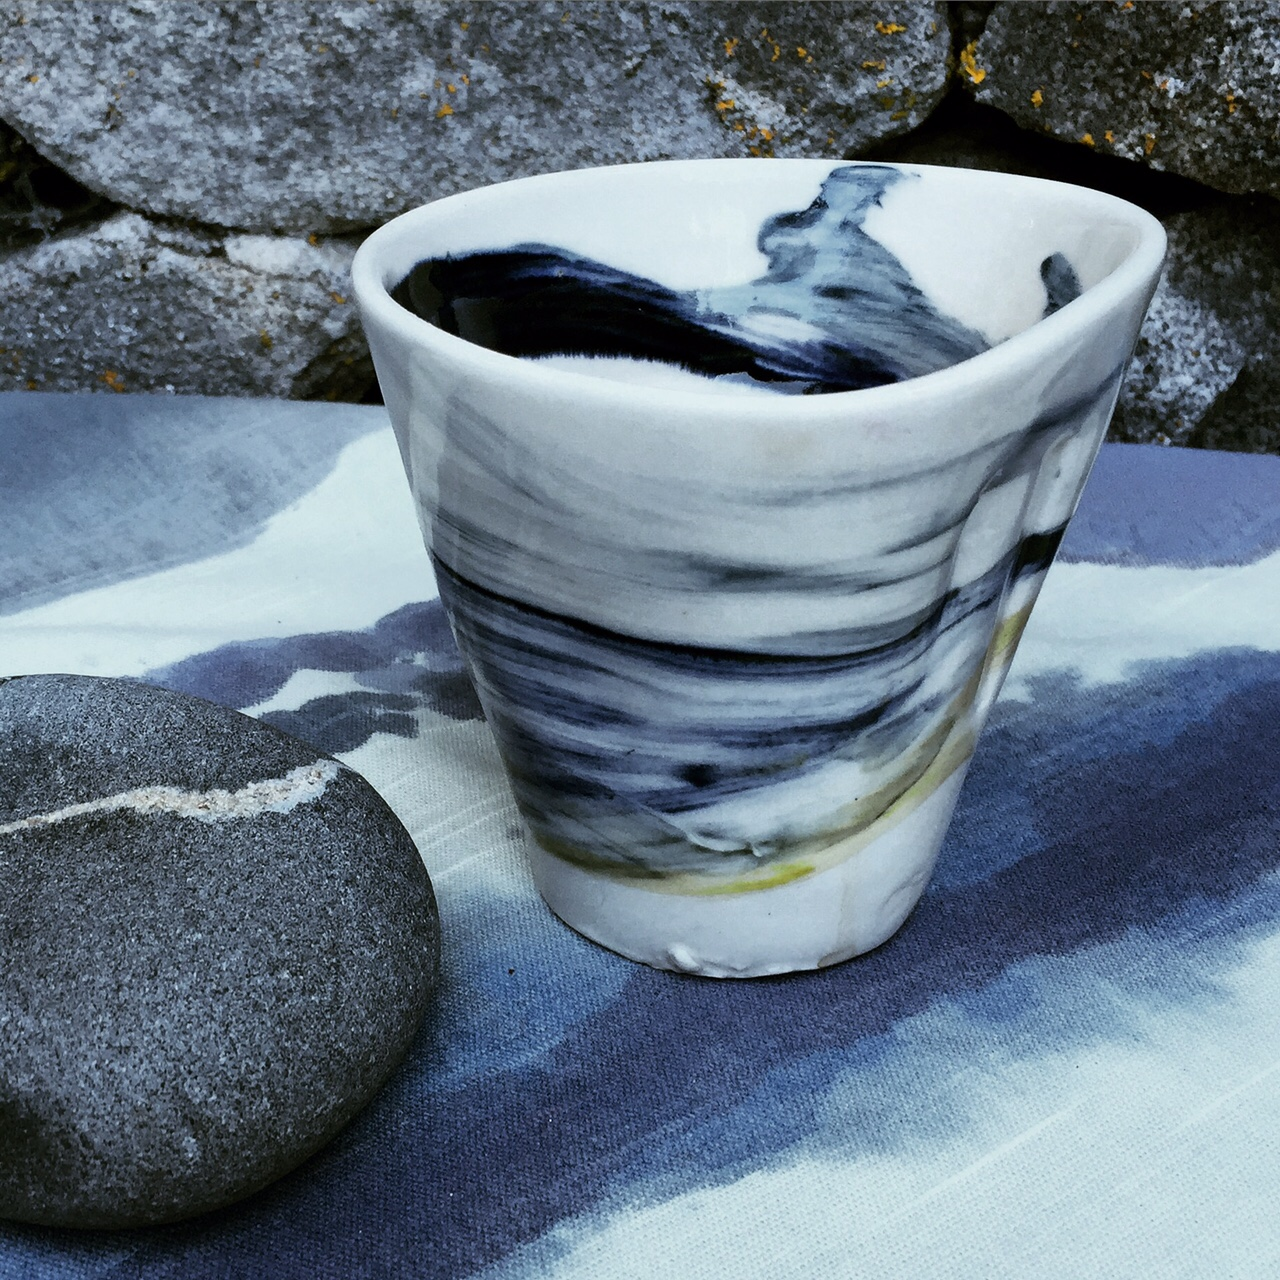 http://catherinewhite.com/rough-ideas/images/cup.JPG